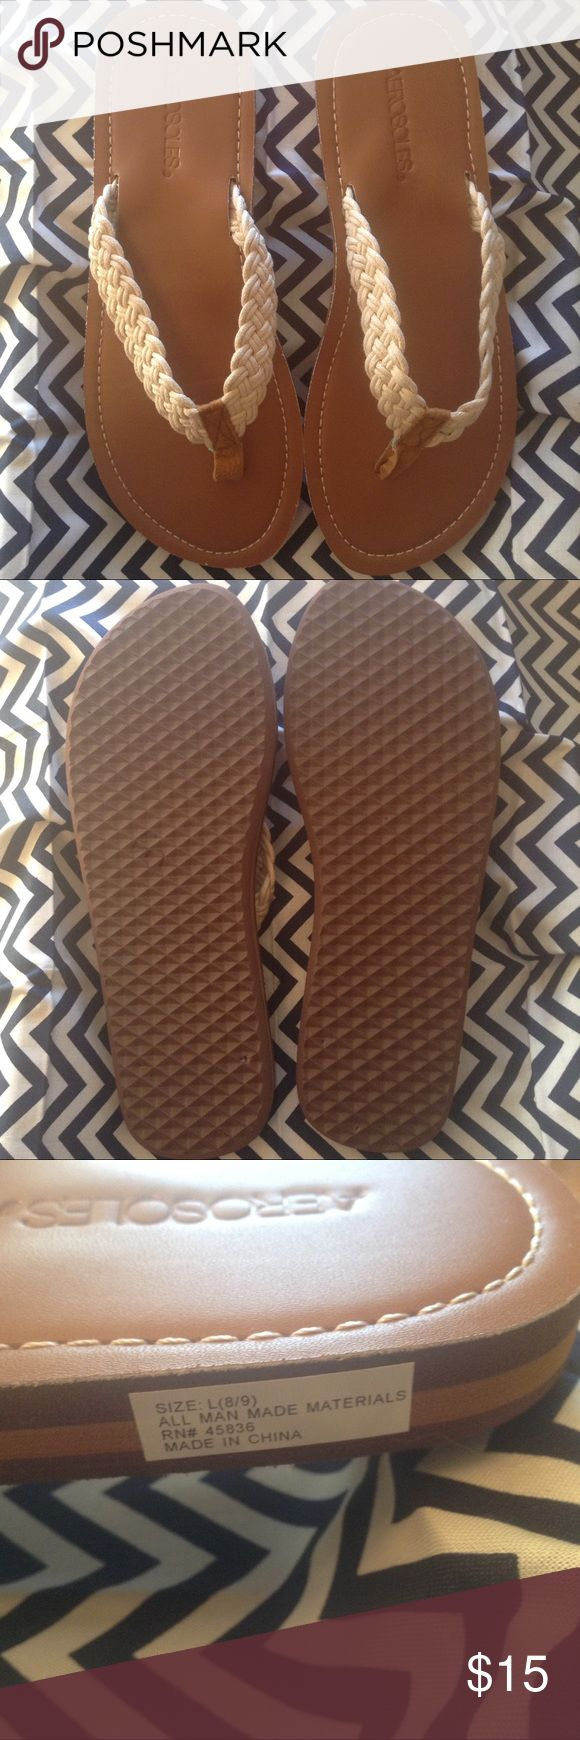 Women's Aerosoles Rope Style Flip Flops Large(8-9) New, Never Worn Aerosoles Women's Flip Flops Size Large (8-9). Camel color sole with light beige stitching to match braided rope style straps. These are traditional style flip flops made of rubber/foam material. AEROSOLES Shoes Sandals